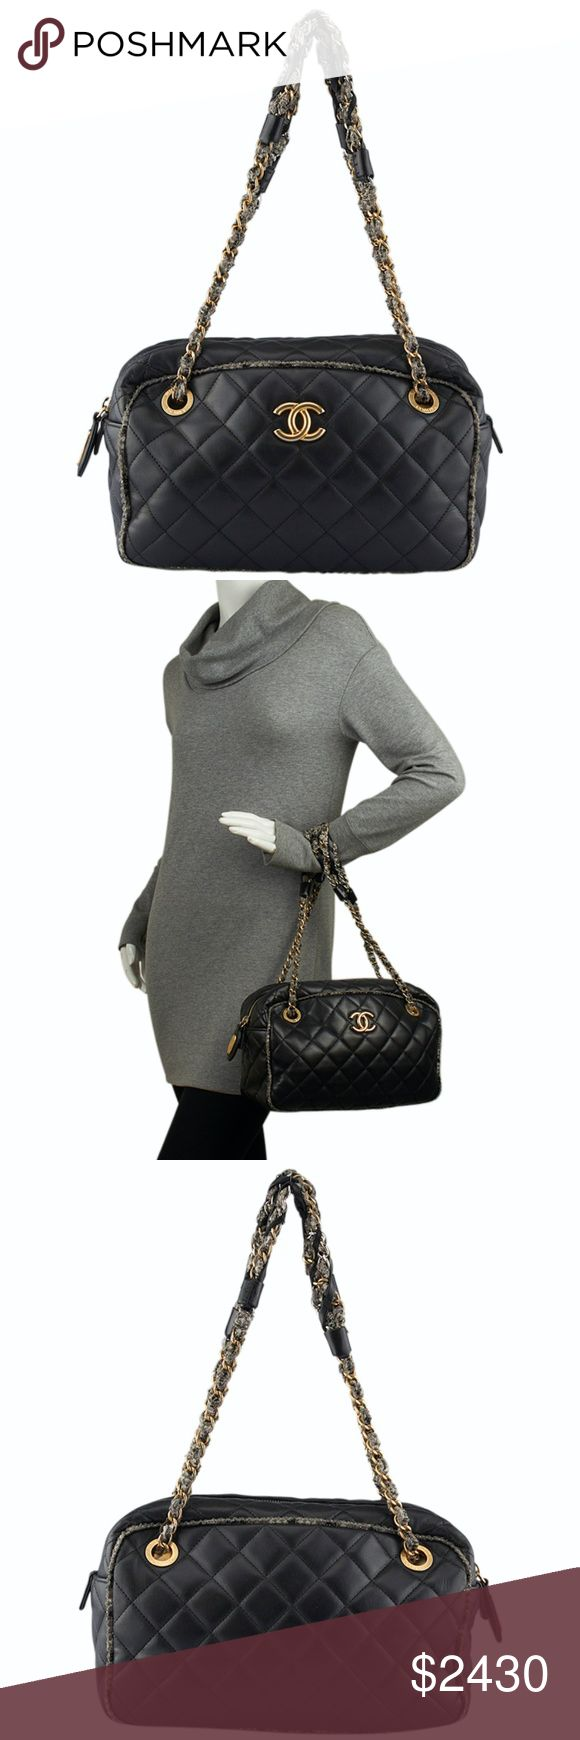 Chanel Tweed Quilted Shoulder Bag (126821) This Chanel shoulder bag features: •Creasing to the bottom corners and staining and wear to the interior. •Overall Condition: Pre-owned •Type: Shoulder Bag •Material: Tweed/Lambskin Leather •Origin: Italy •Color: Black •Interior Lining: Fabric •Interior Color: Beige •Hardware: Gold-Tone •Meas (L x W x H): 11x5x8 •Handle Drop: 8 •Interior Pockets: 3 •Weight: 2 lbs •Production Code: 14469024 CHANEL Bags Shoulder Bags